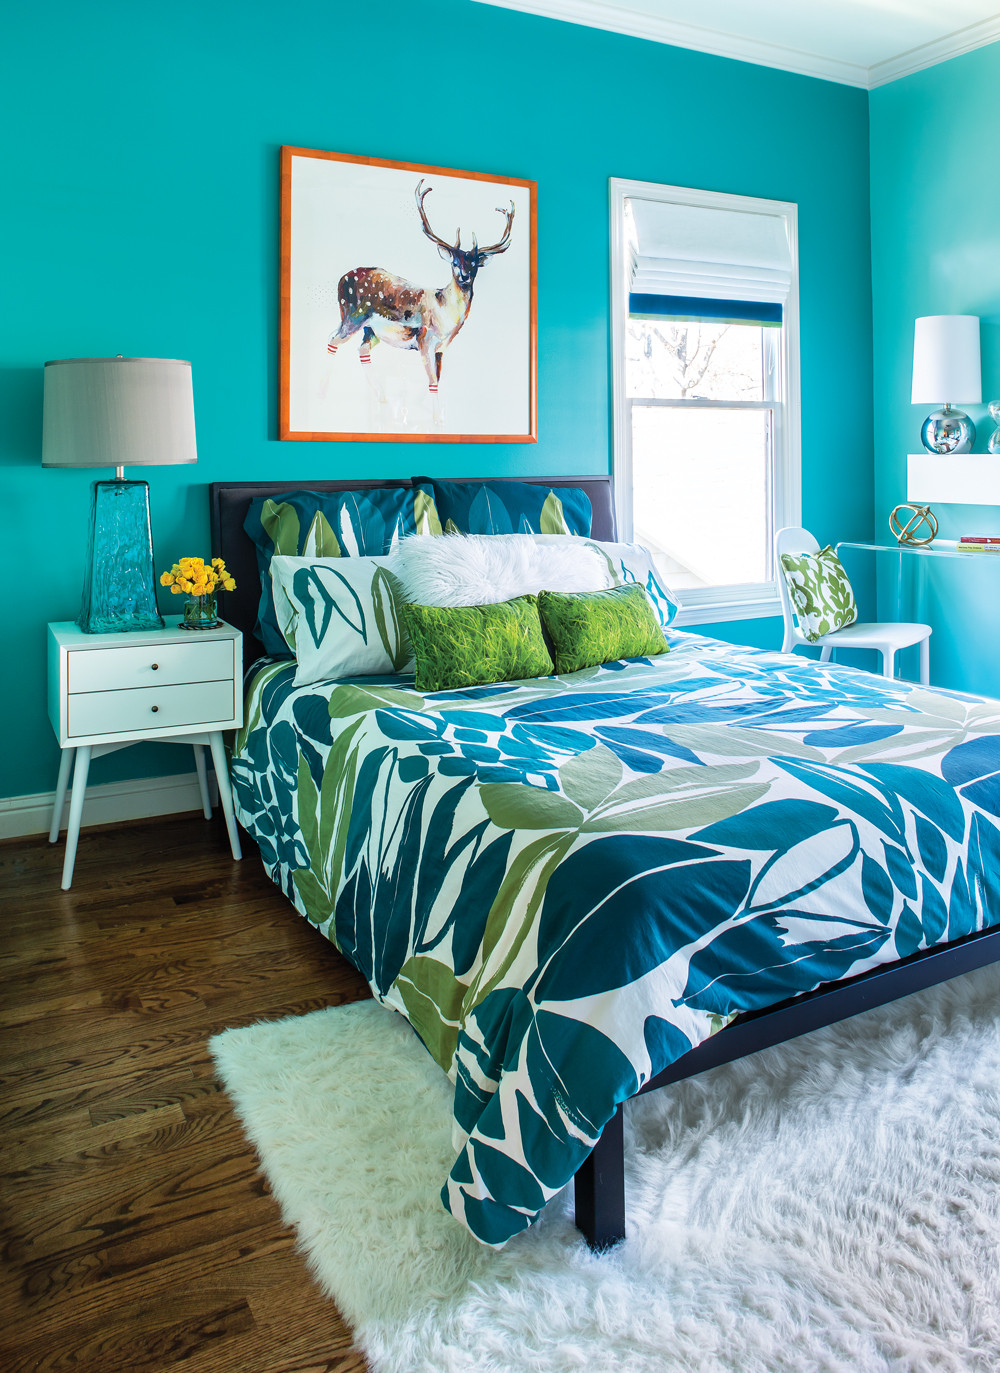 Turquoise Bedroom Decoration  Room Envy This bright turquoise bedroom is a teen dream